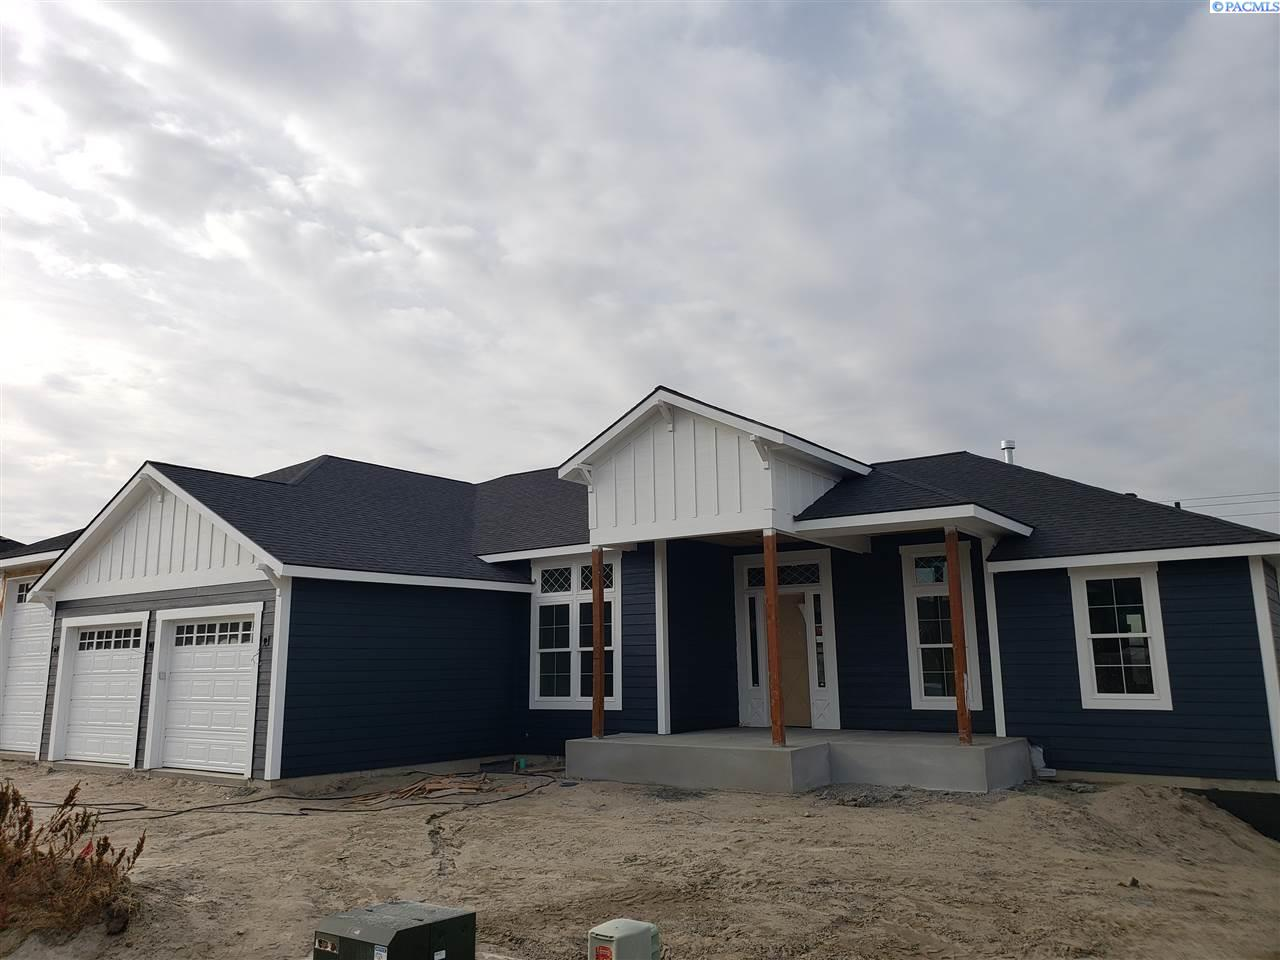 Single Family Homes for Sale at 728 S Pittsburgh Street Kennewick, Washington 99336 United States